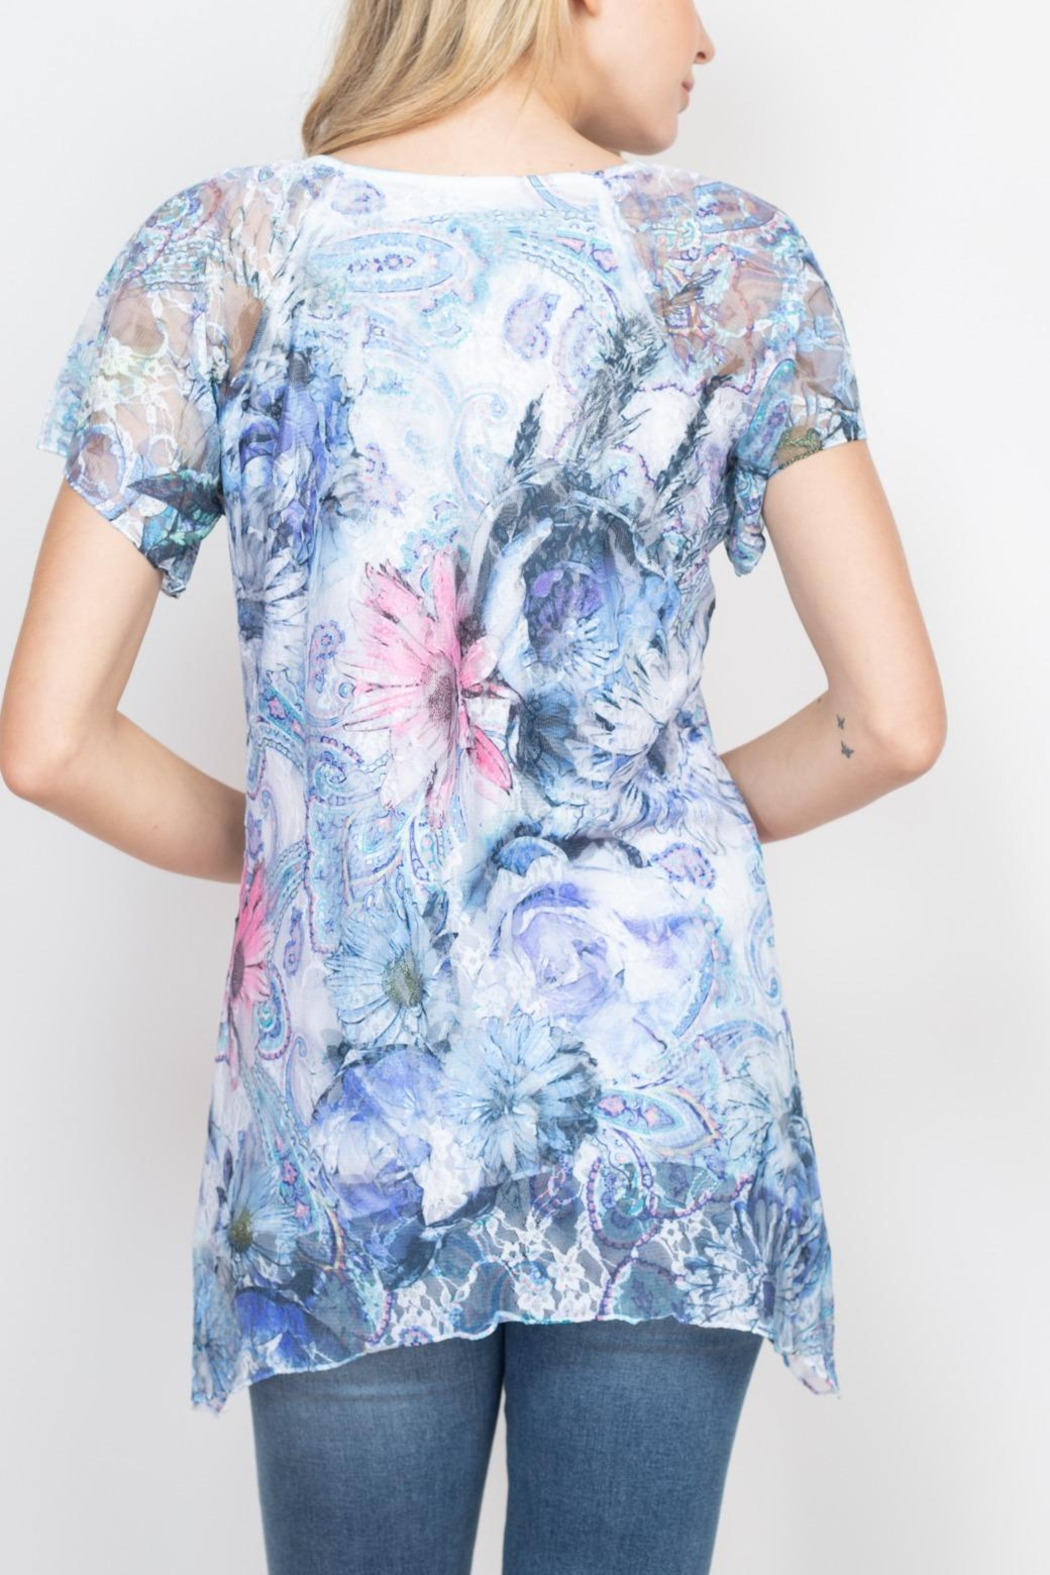 Riah Fashion Blue Floral Top - Front Full Image